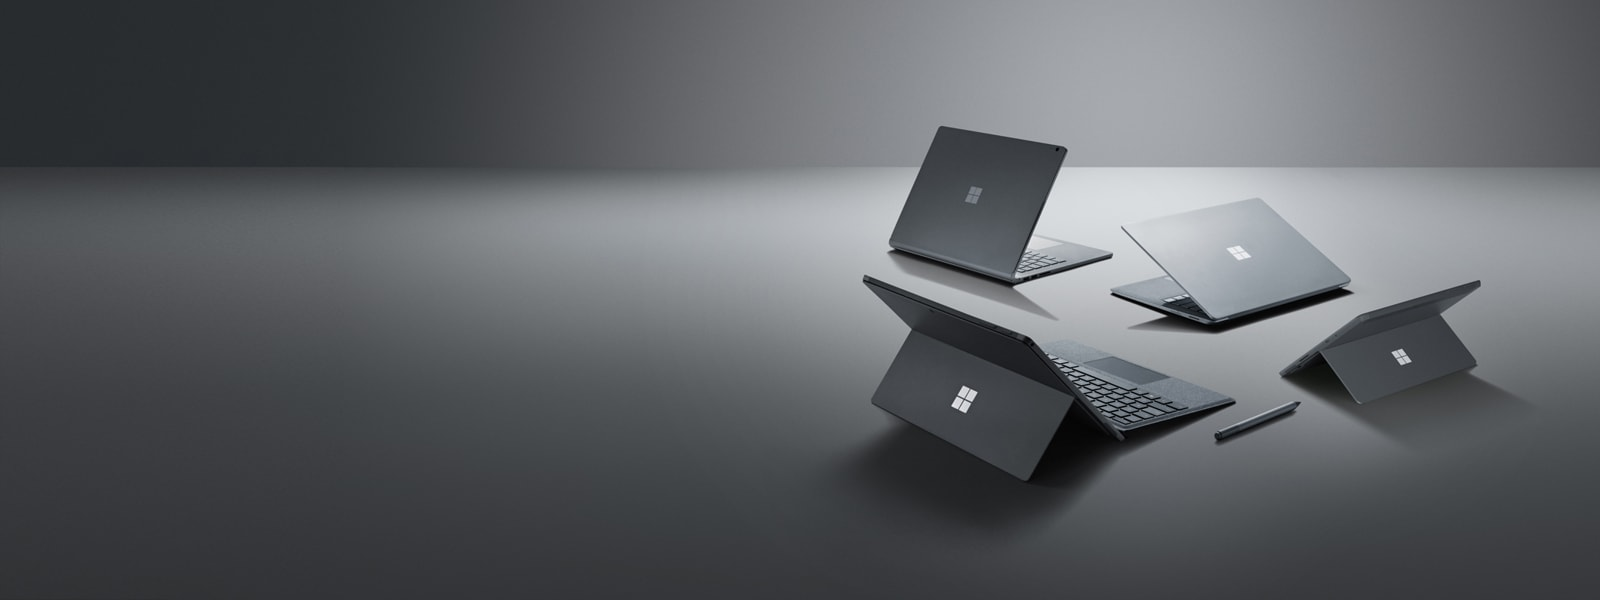 Die Surface-Familie: Surface Go und Surface Pro